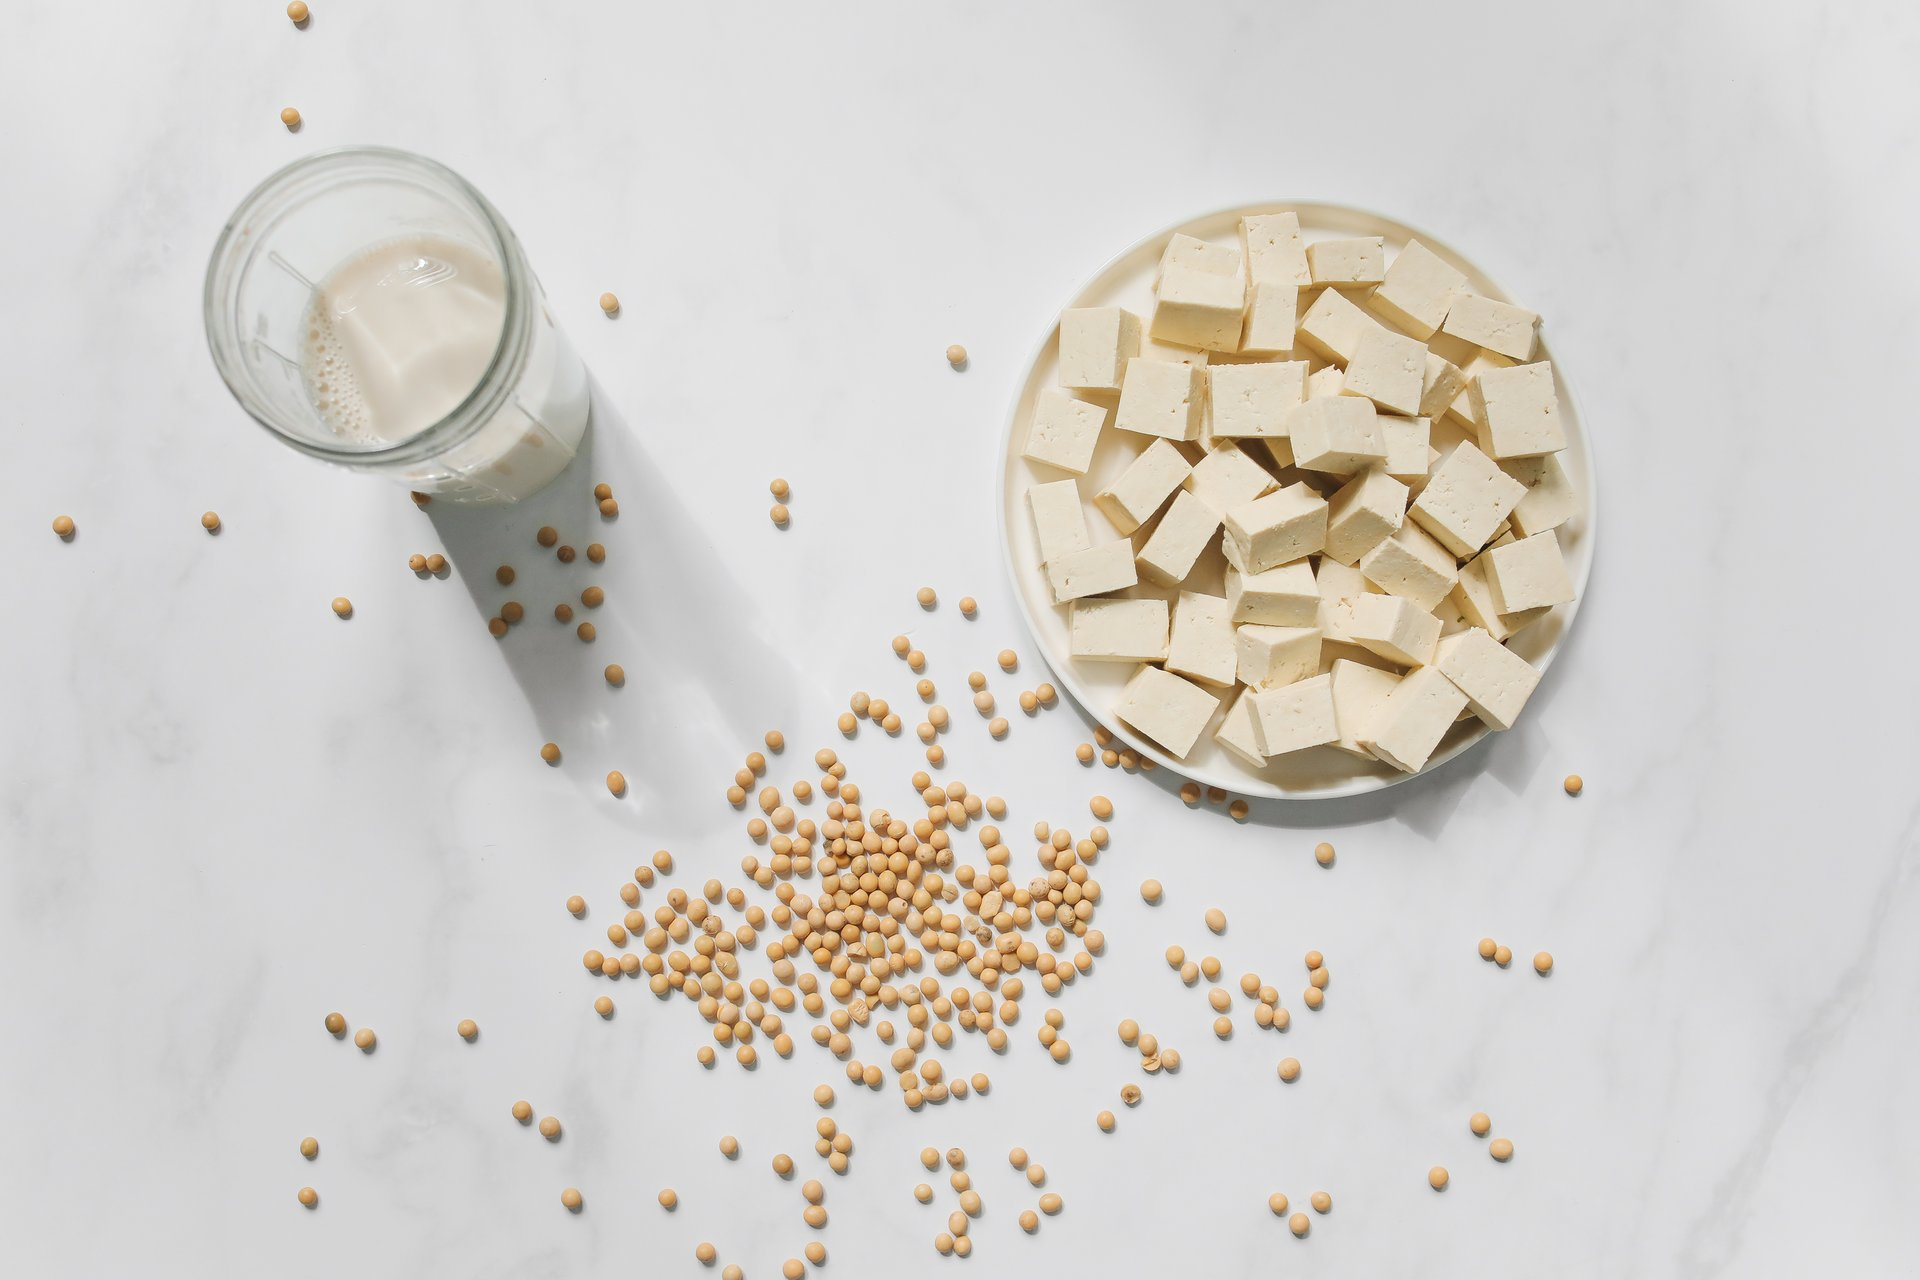 Is Soy Milk a Complete Protein?